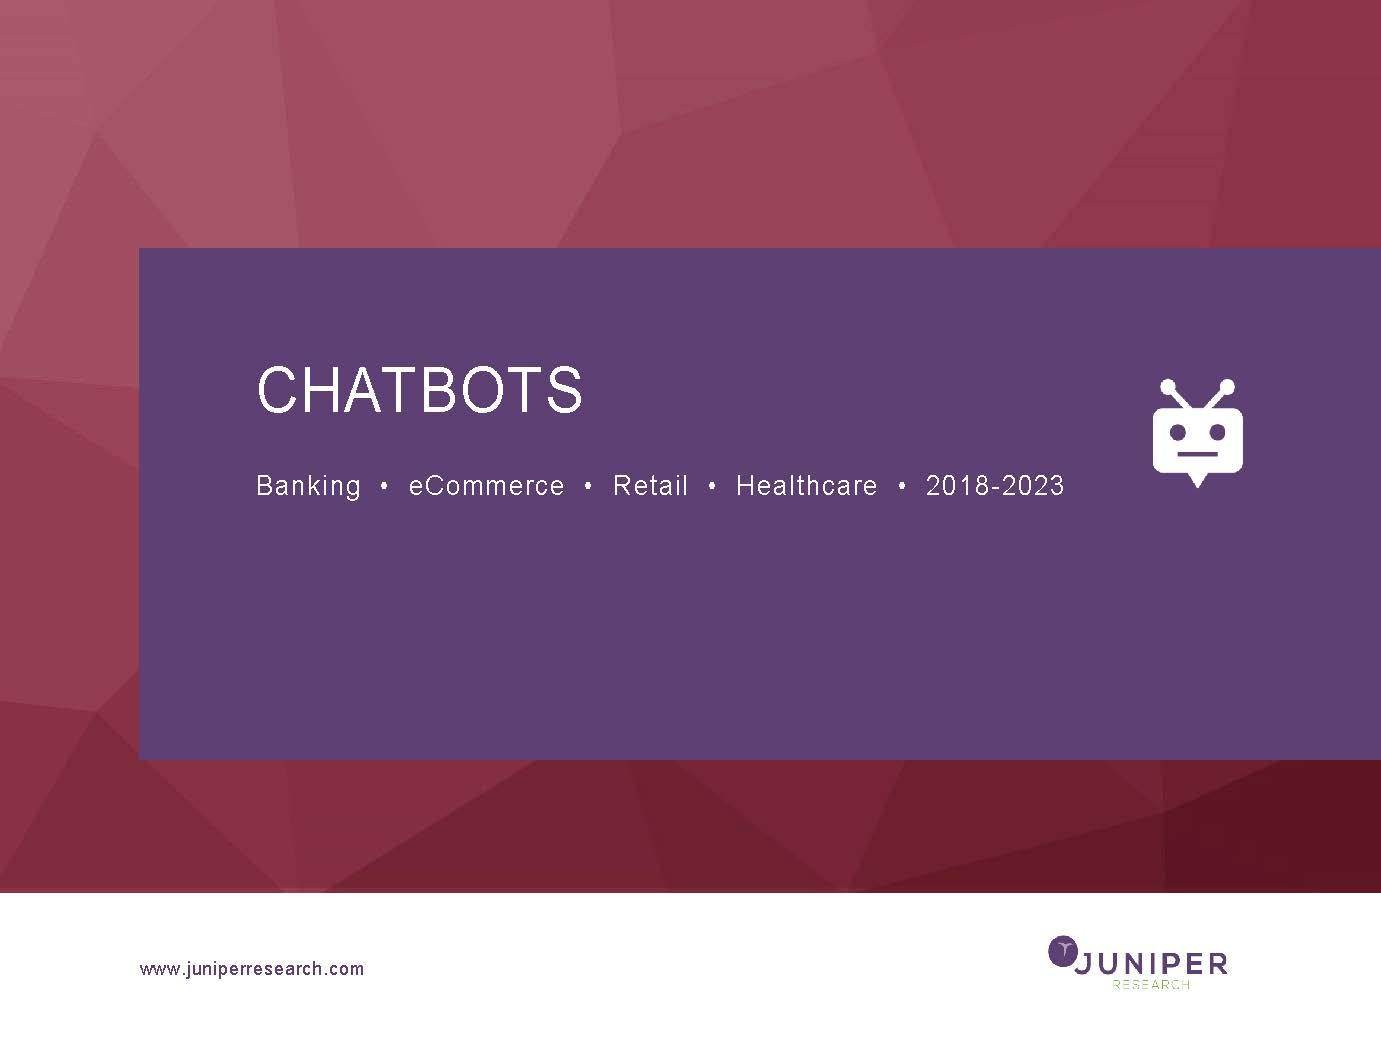 Chatbots: Banking, eCommerce, Retail & Healthcare 2018-2023 Full Research Suite